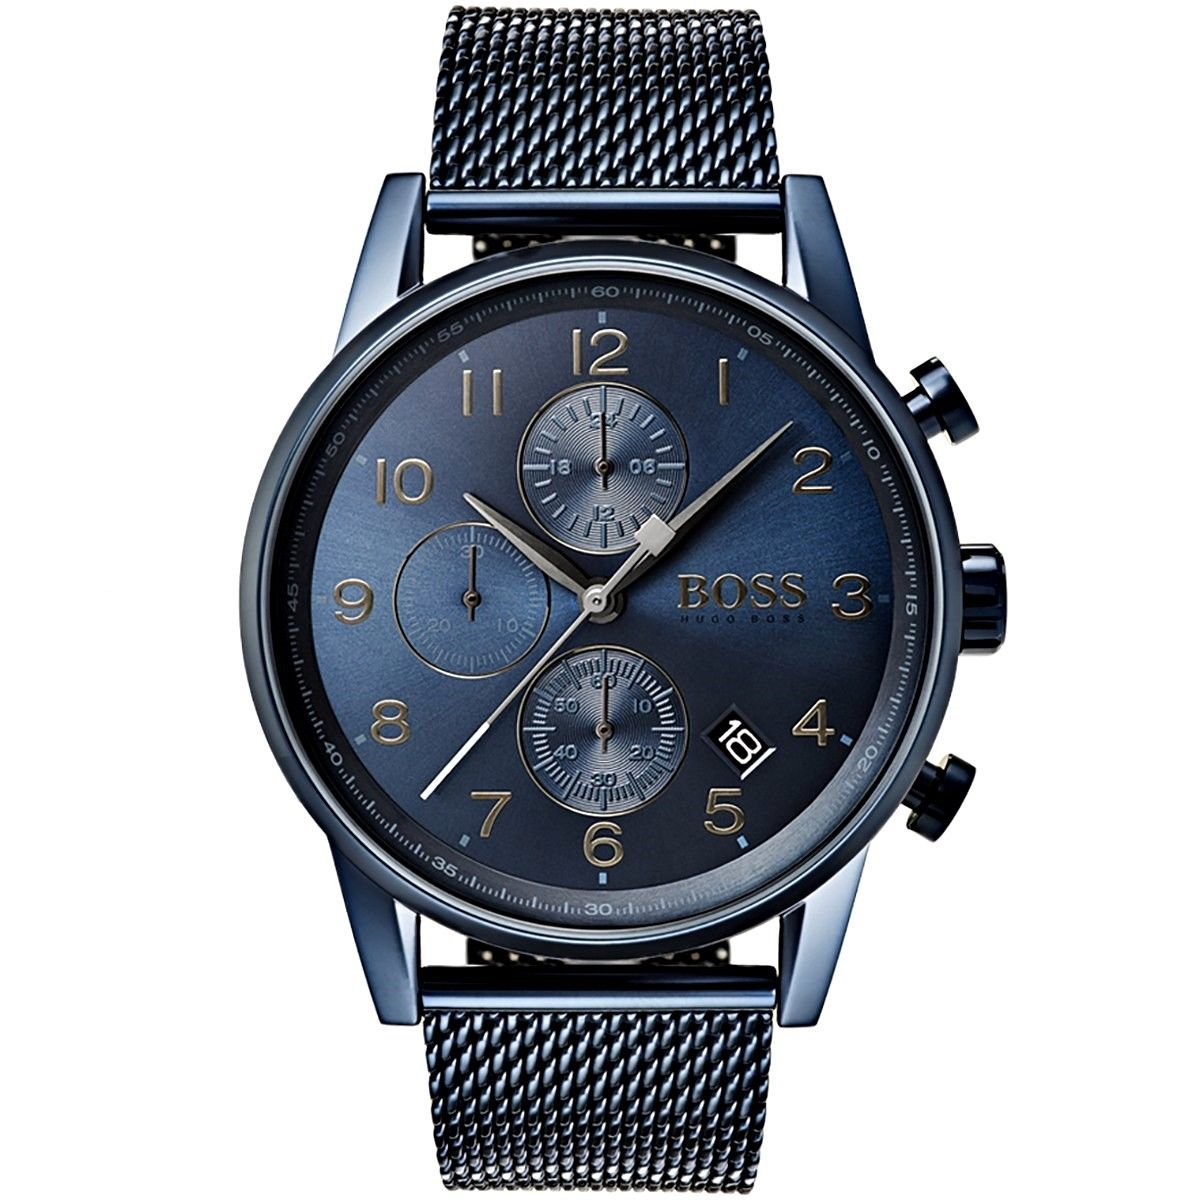 Hugo Boss 1513538 Men's Chronograph Watch